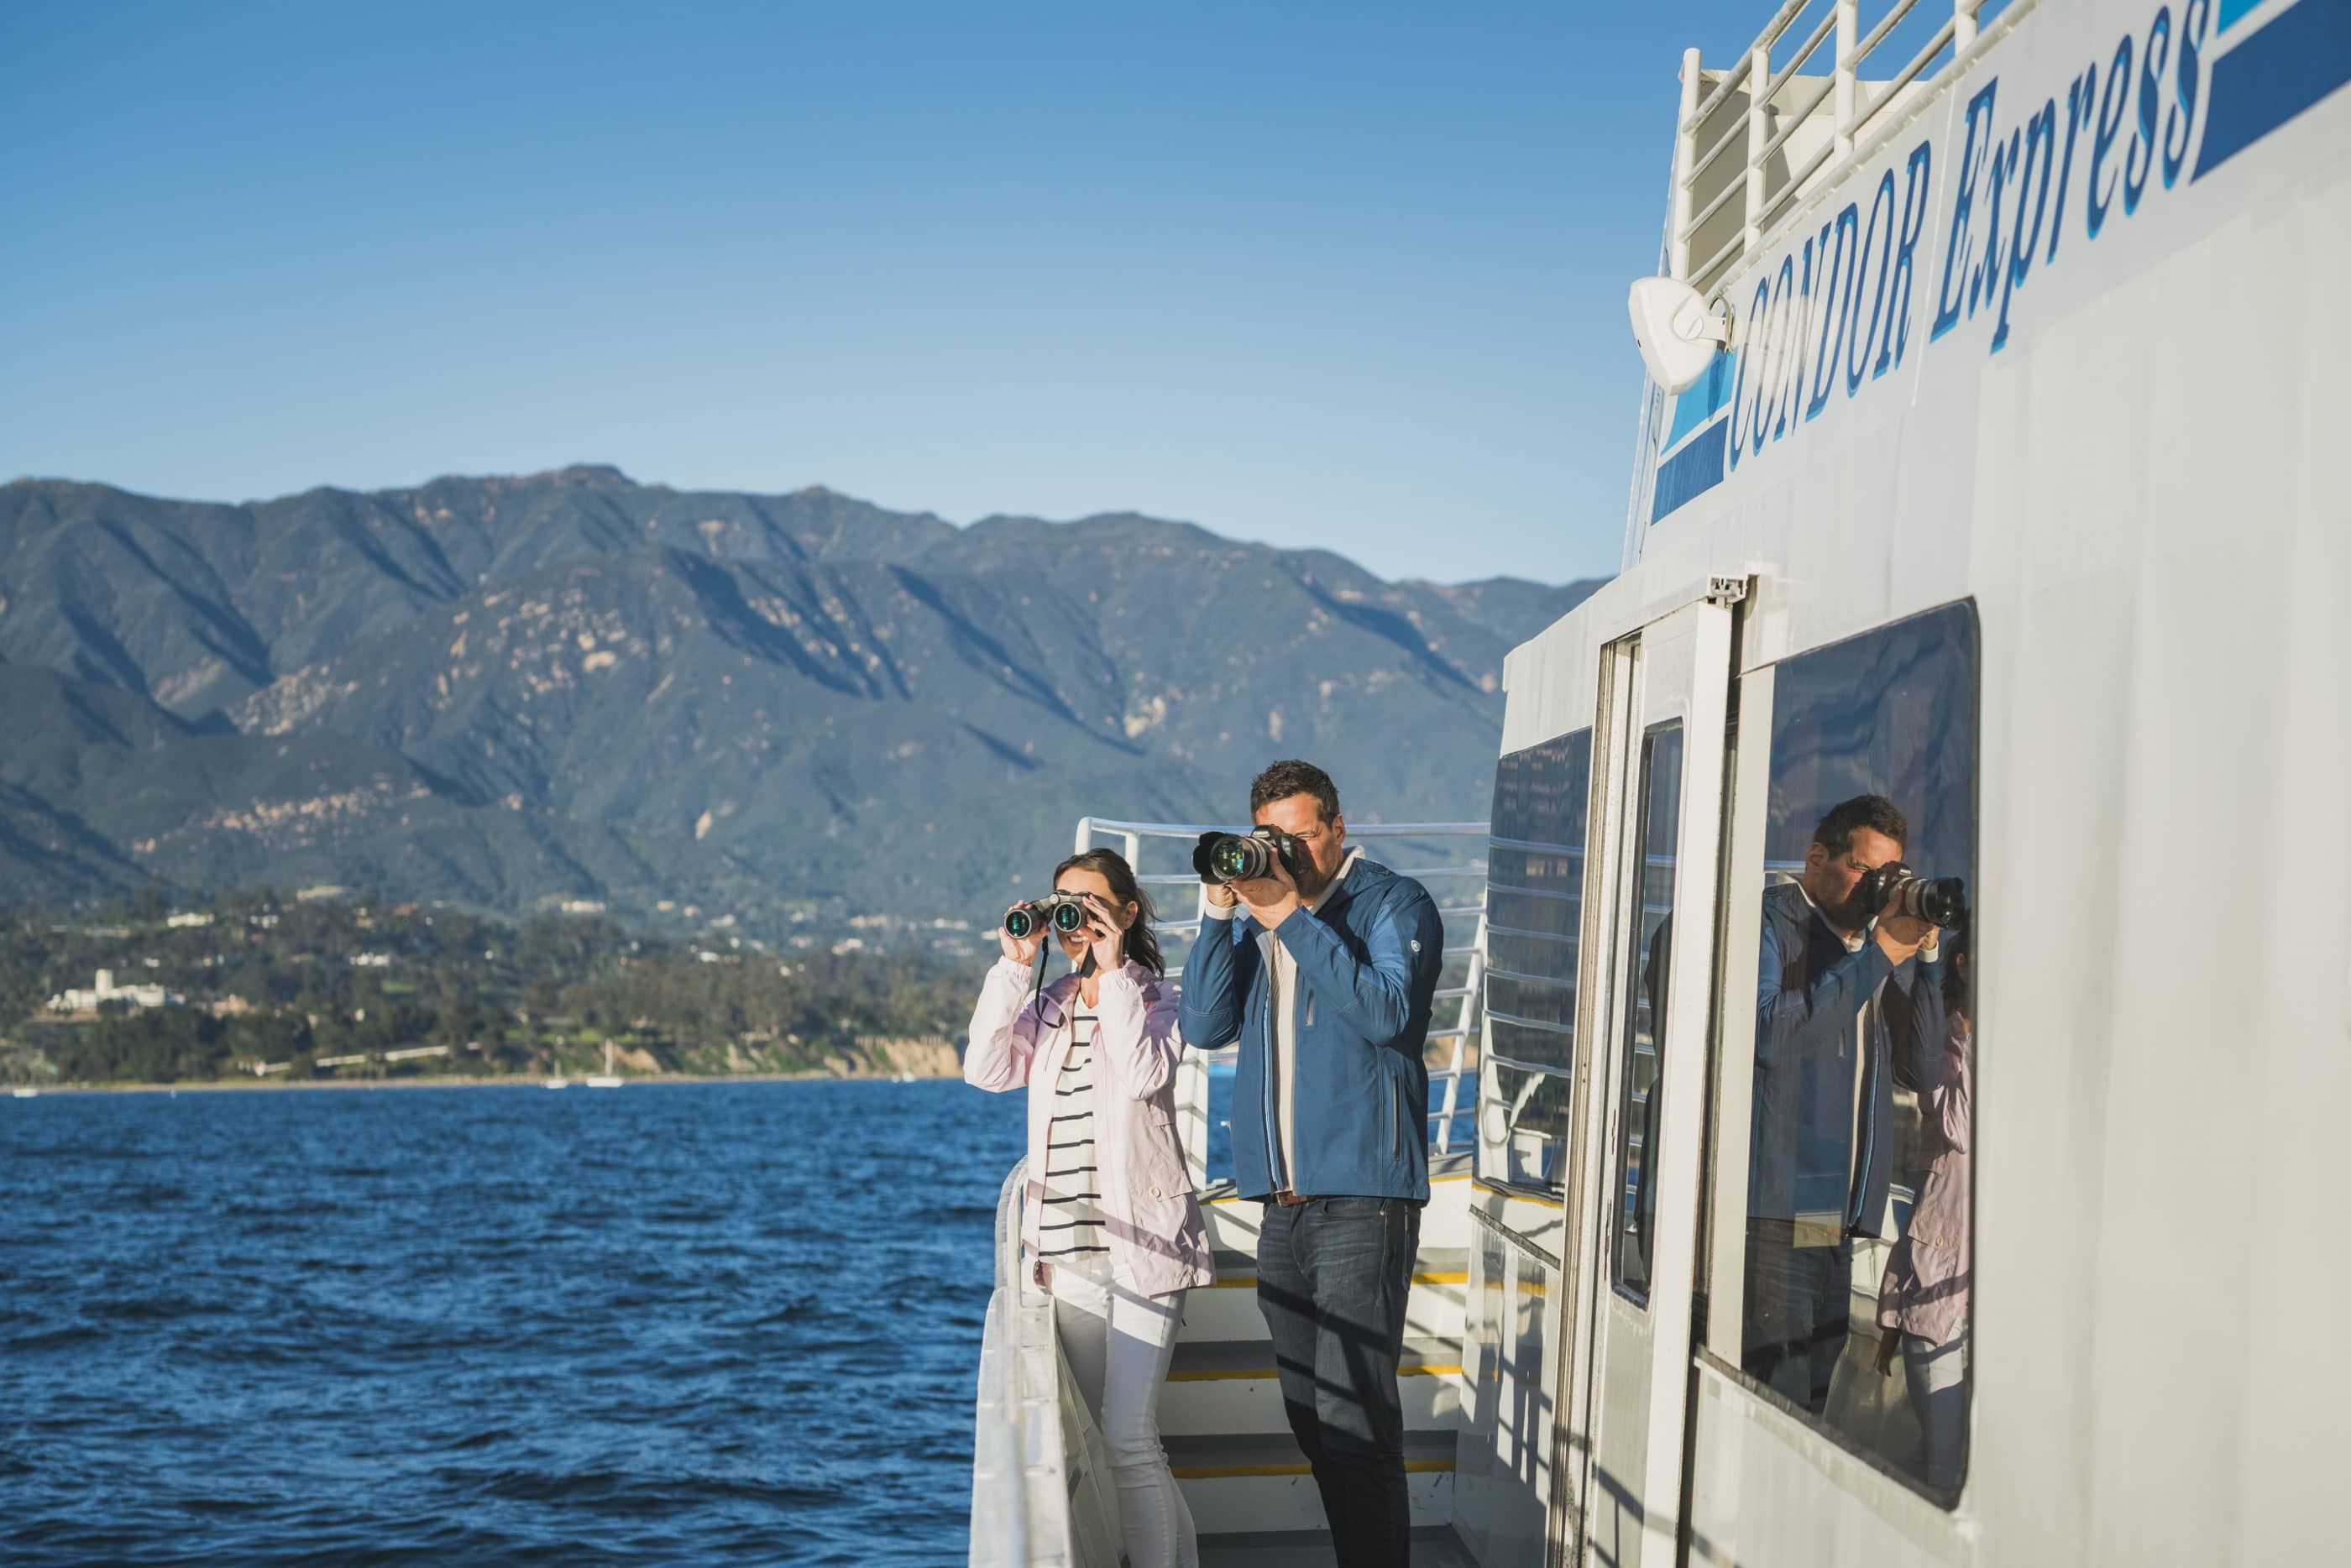 A couple with binoculars and a camera searching for whales on a boat near Santa Barbara.